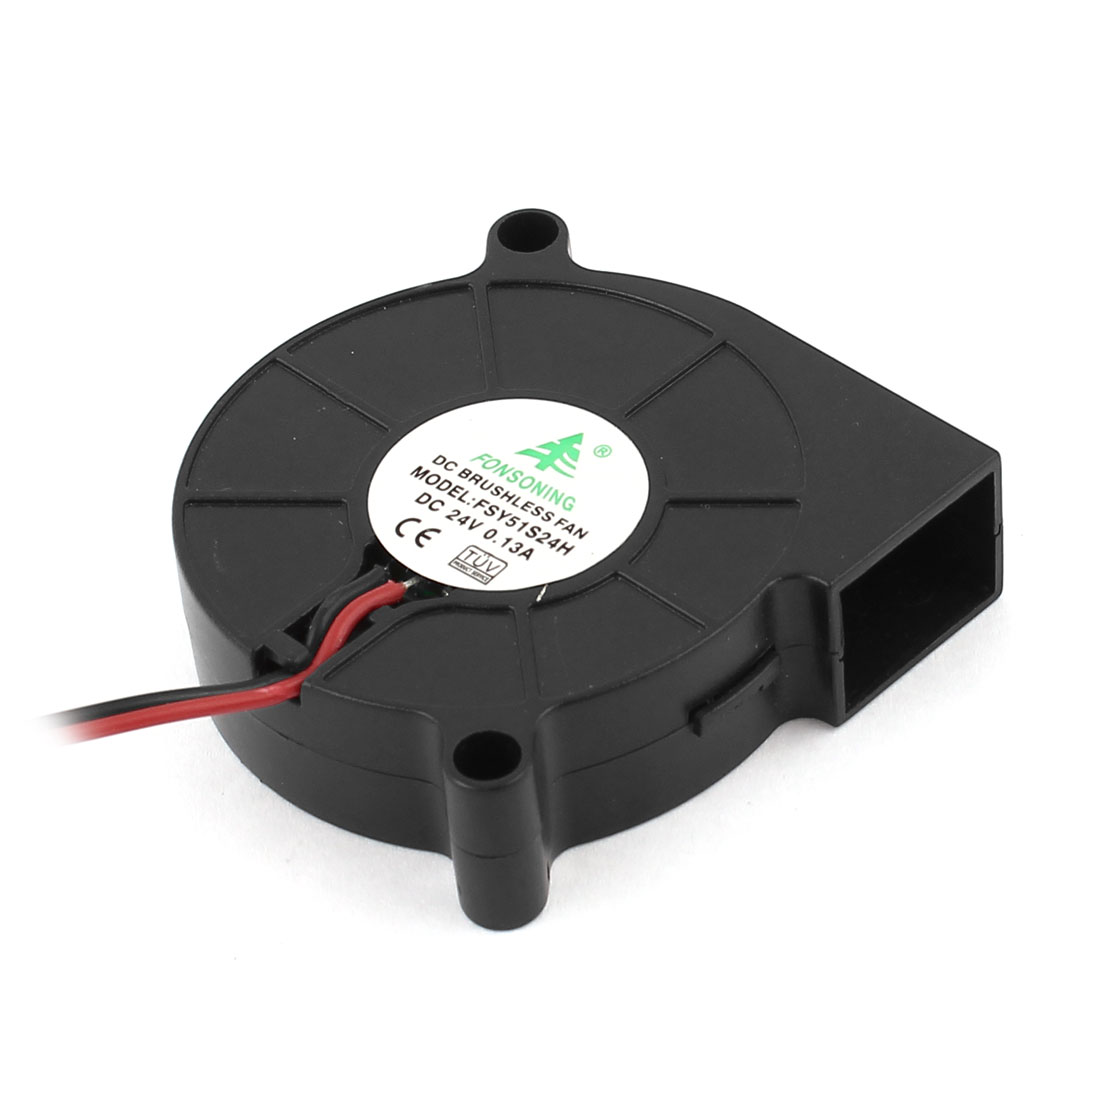 DC 24V 0.13A 2 Pin Connector Brushless Turbo Blower Cooling Fan Black